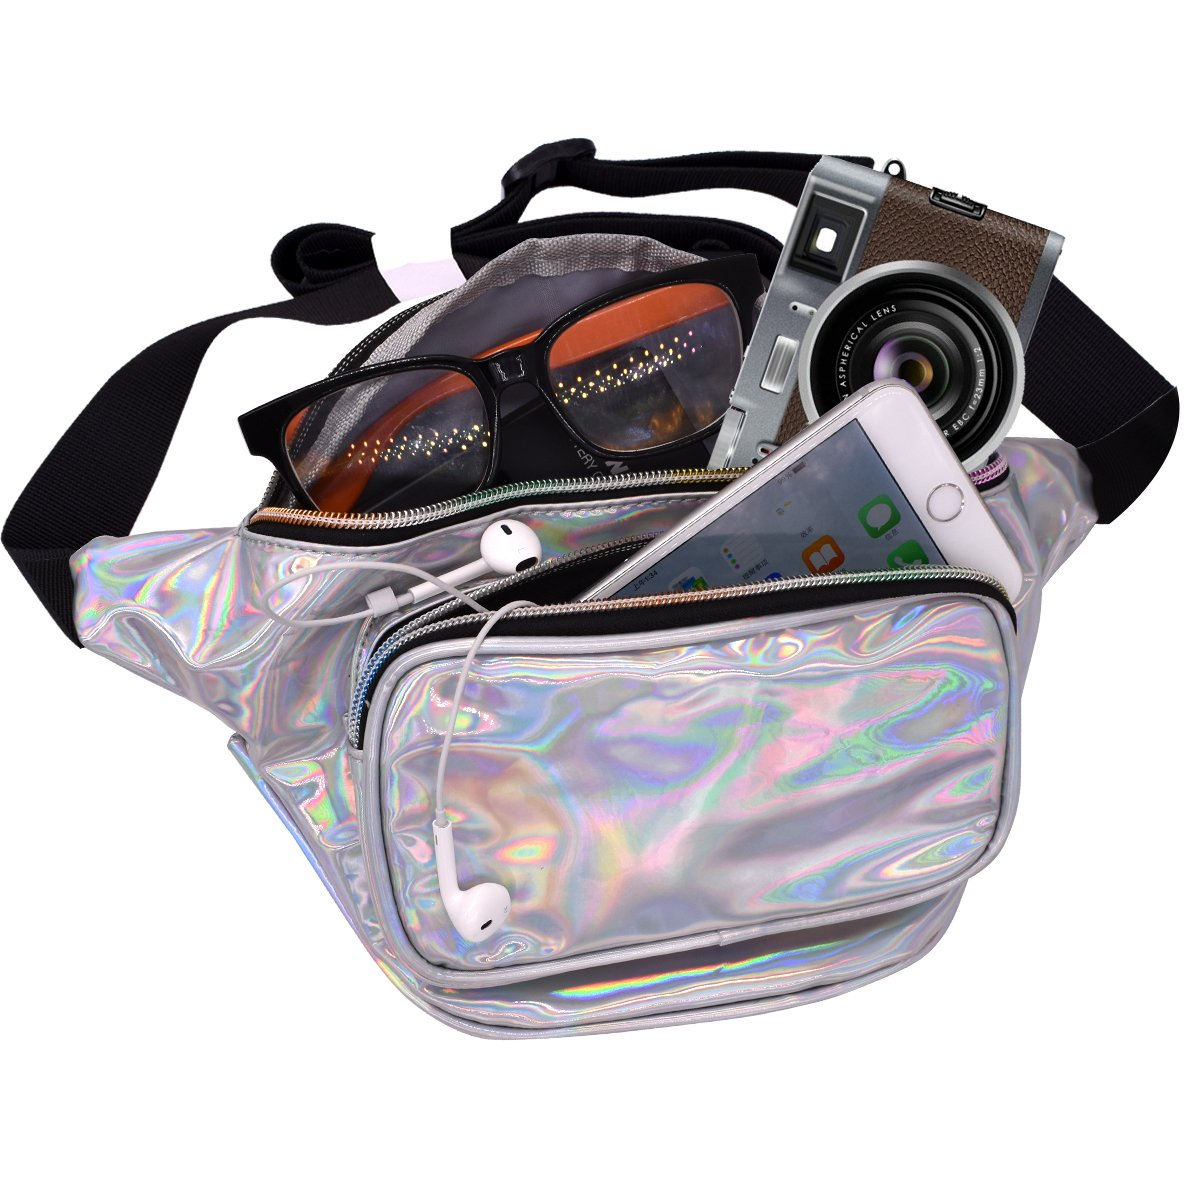 Water Resistant Shiny Neon Fanny Bag for Women Rave Festival Hologram Bum Travel Purse Waist Pack by MOHARY (Image #5)